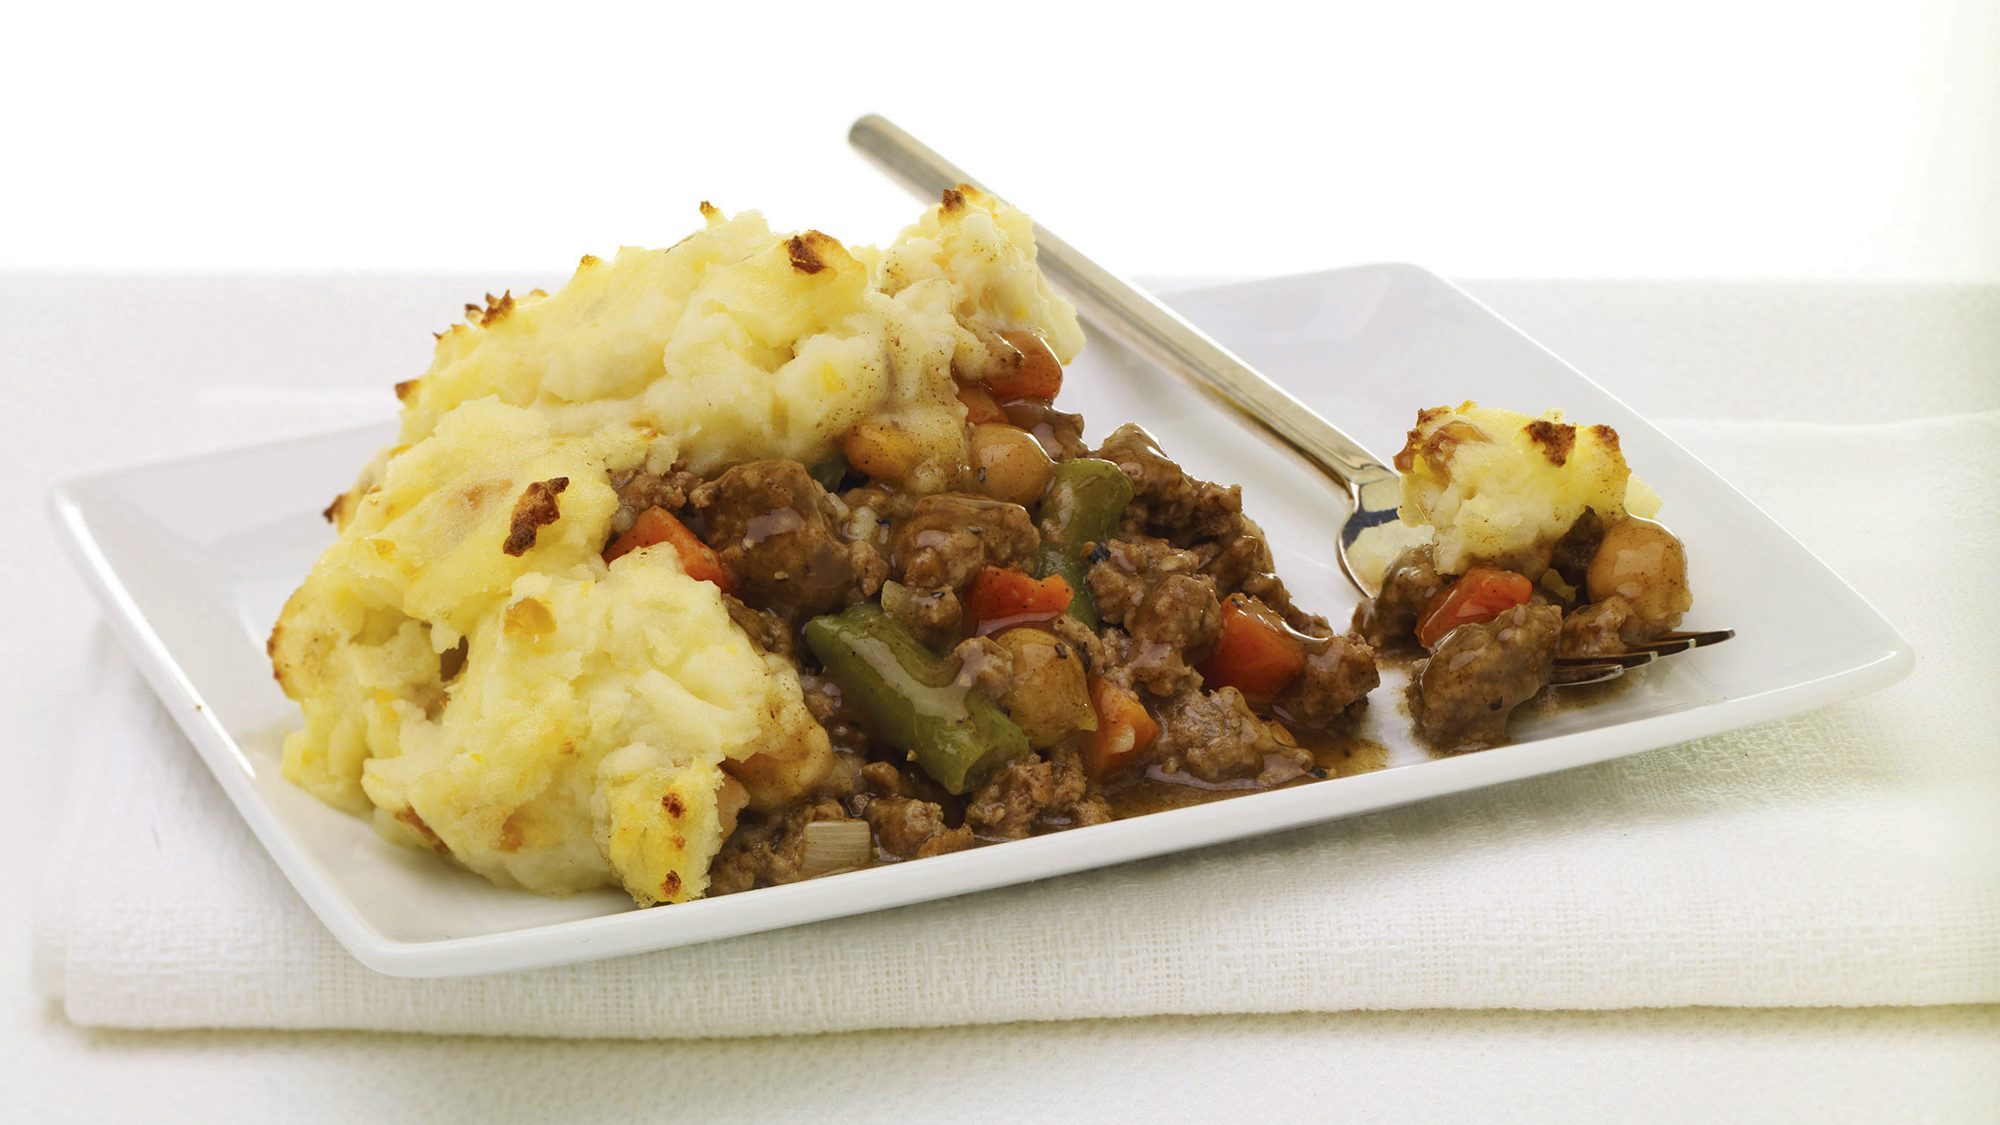 McCormick Gourmet Shepherd's Pie with Cumin and Smashed Chickpeas